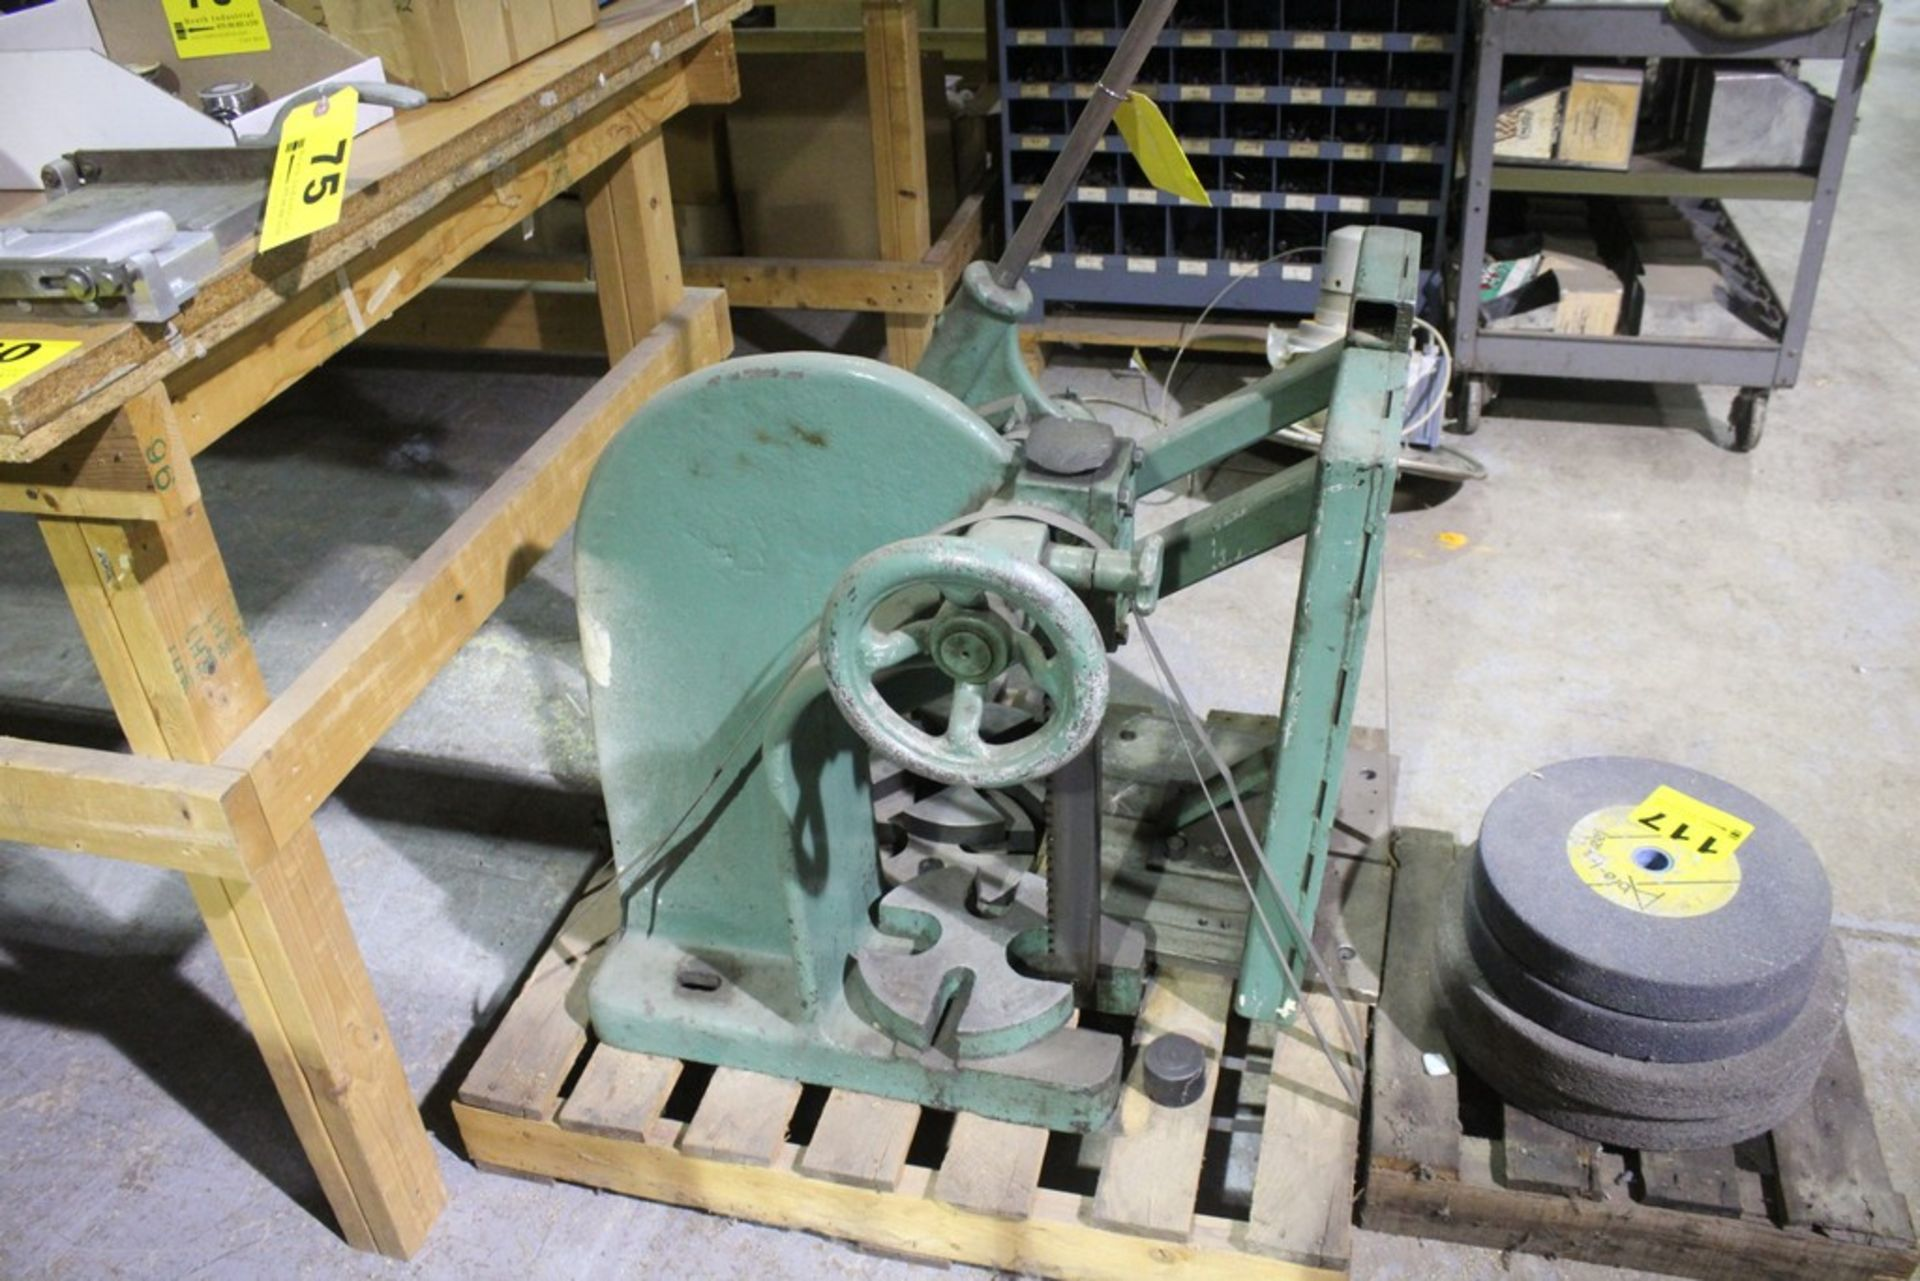 Lot 1 - FAMCO 3 1/2R 5 TON ARBOR PRESS WITH HEAVY DUTY WALL SUPPORT STAND, FOUR PRESS PLATES